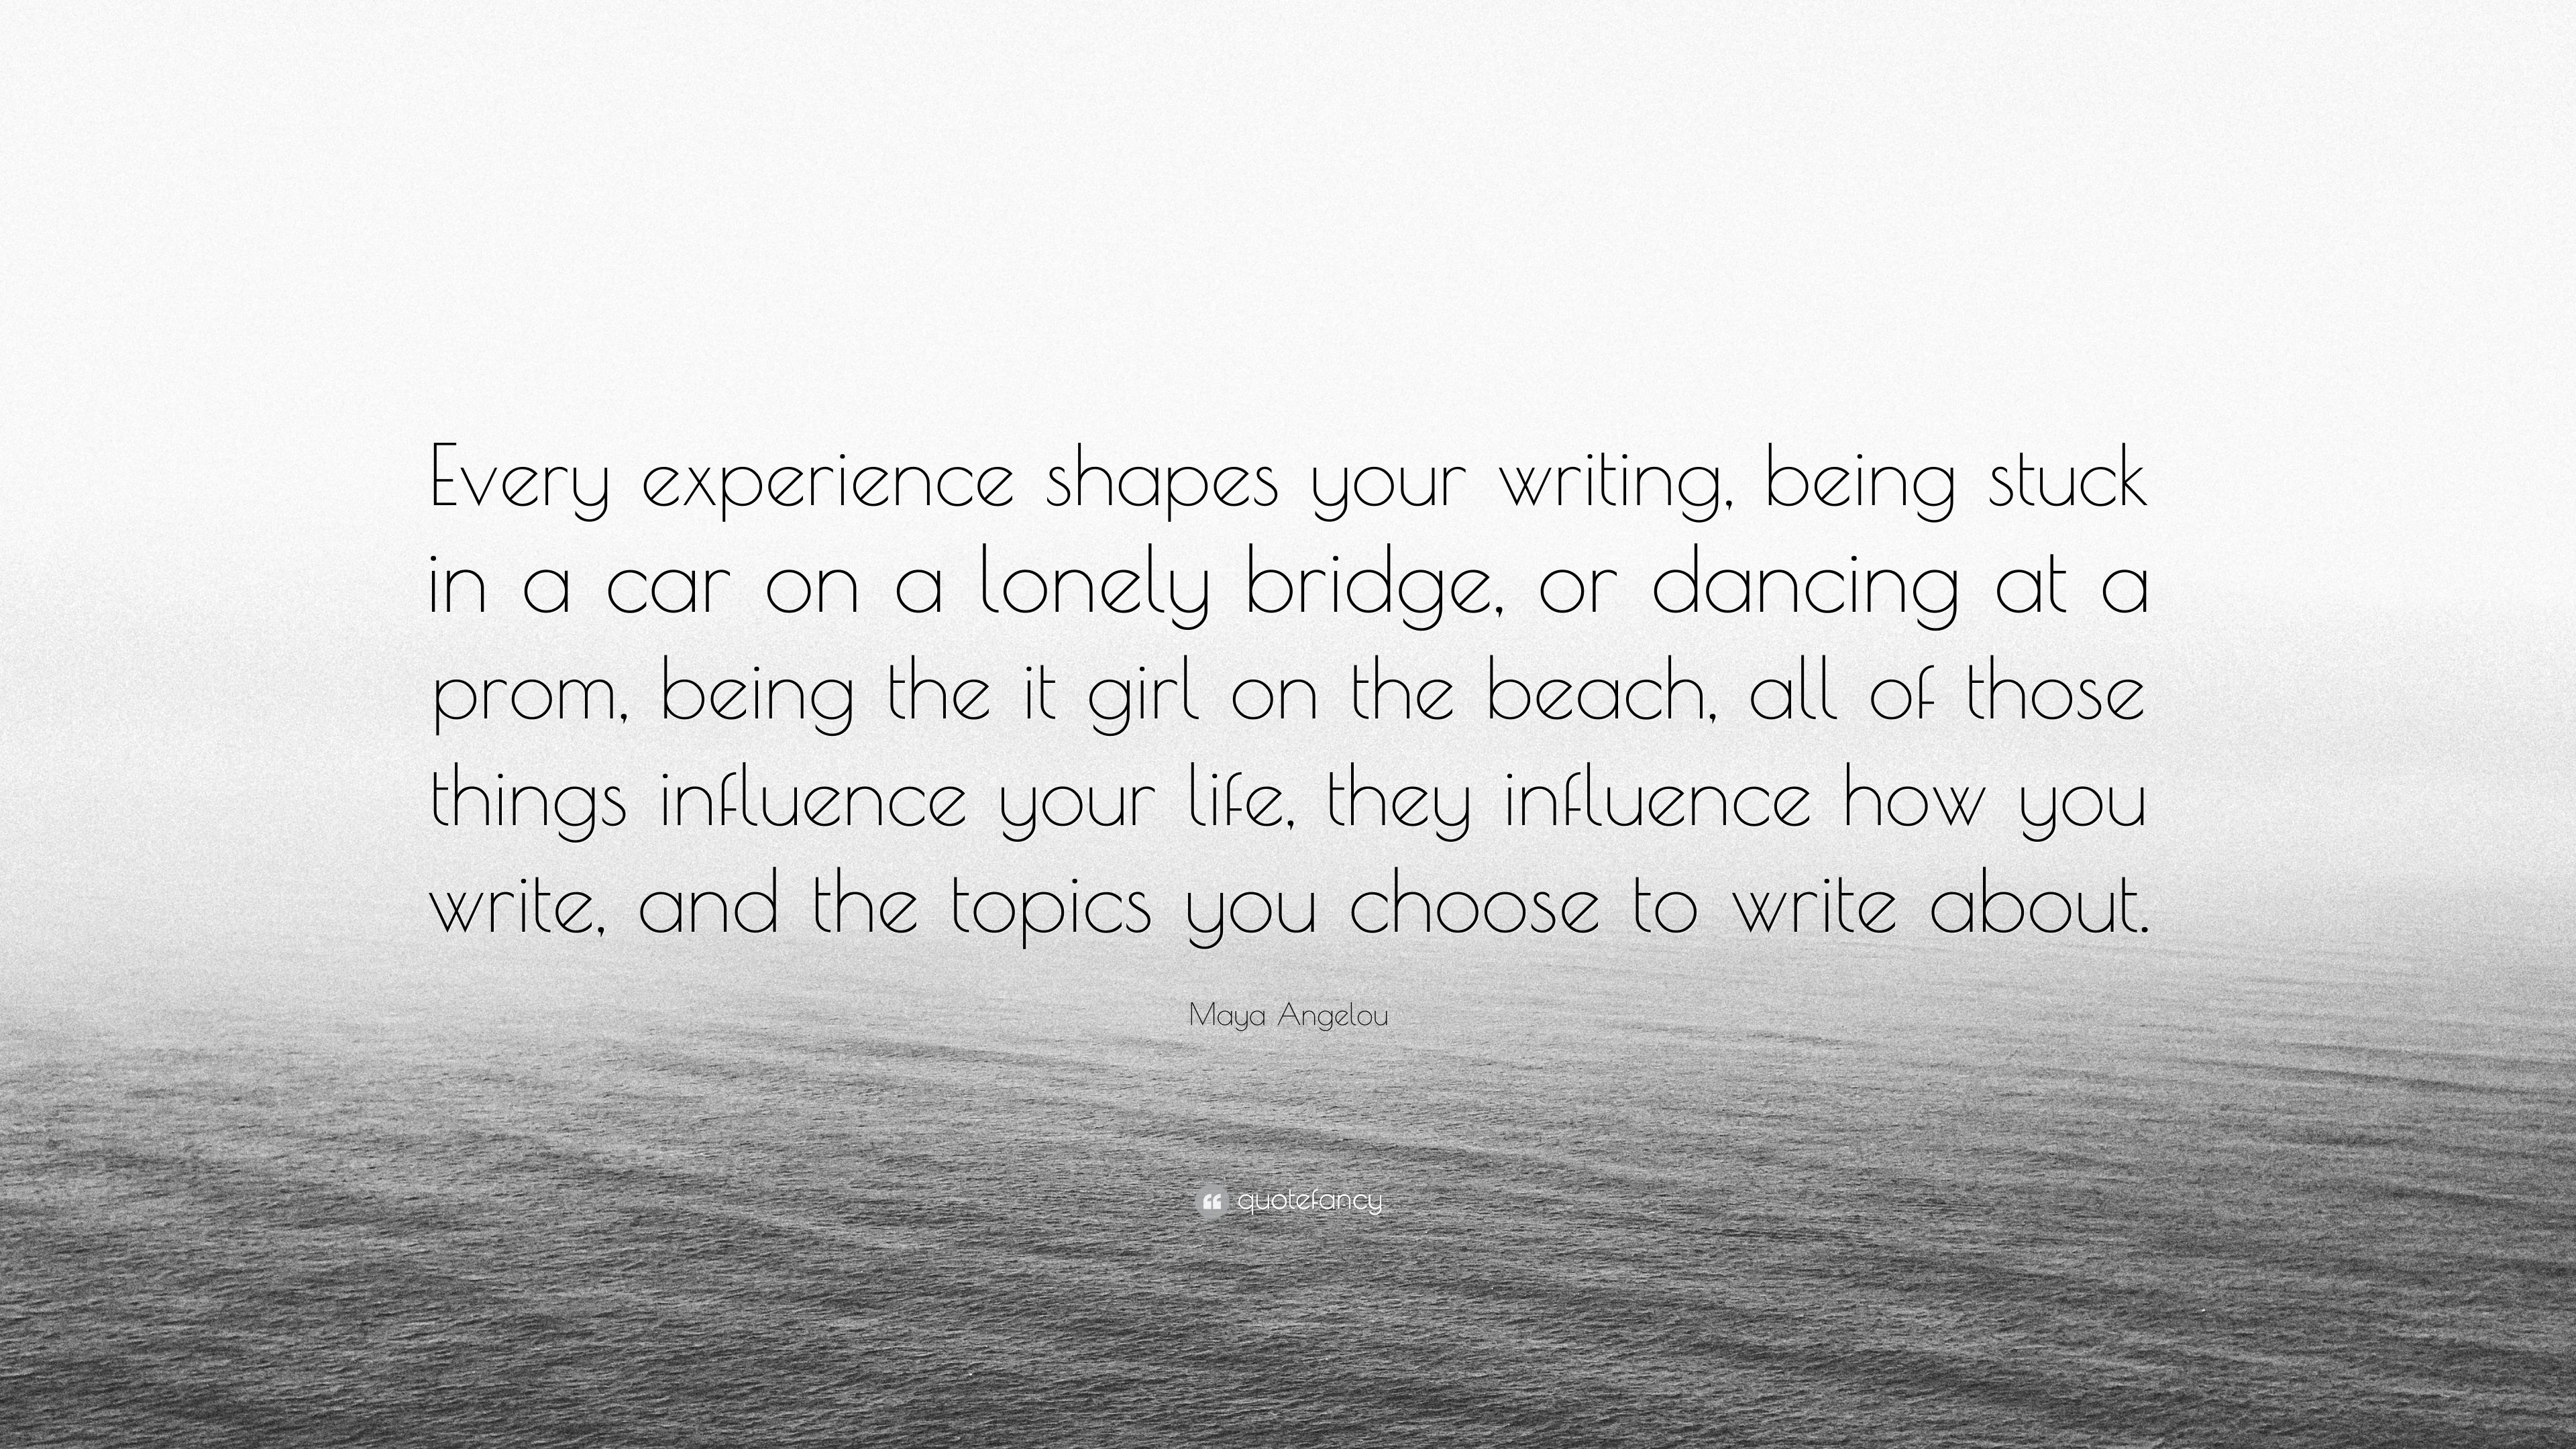 beach experience essay Descriptive essay just by going to this one spot can relieve you from all the troubles and stress that is occurring for me, the beach takes away all my problems.